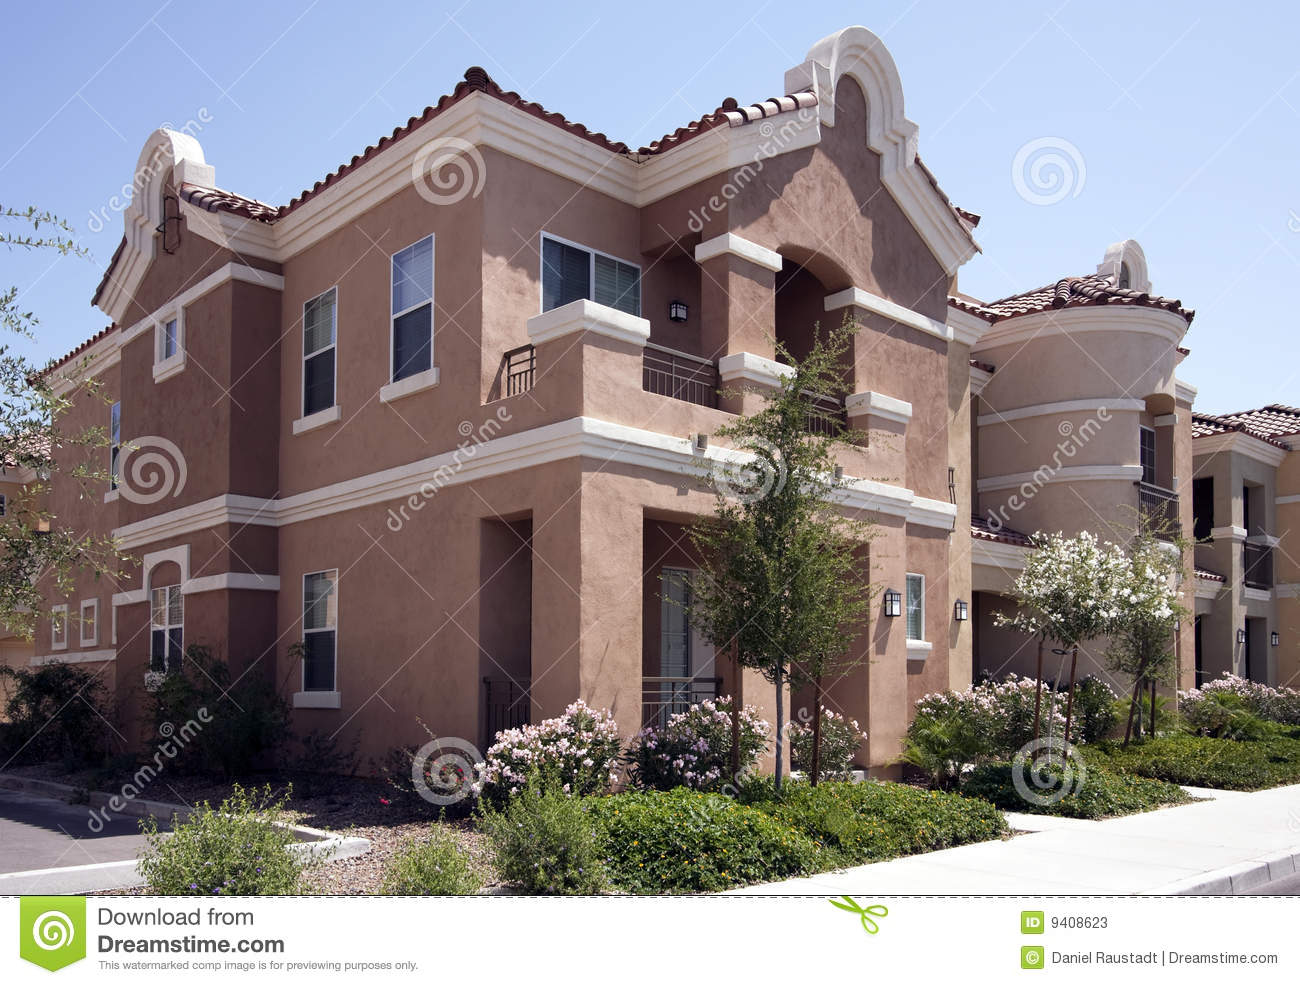 New modern arizona homes stock photos image 9408623 for Building a house in arizona